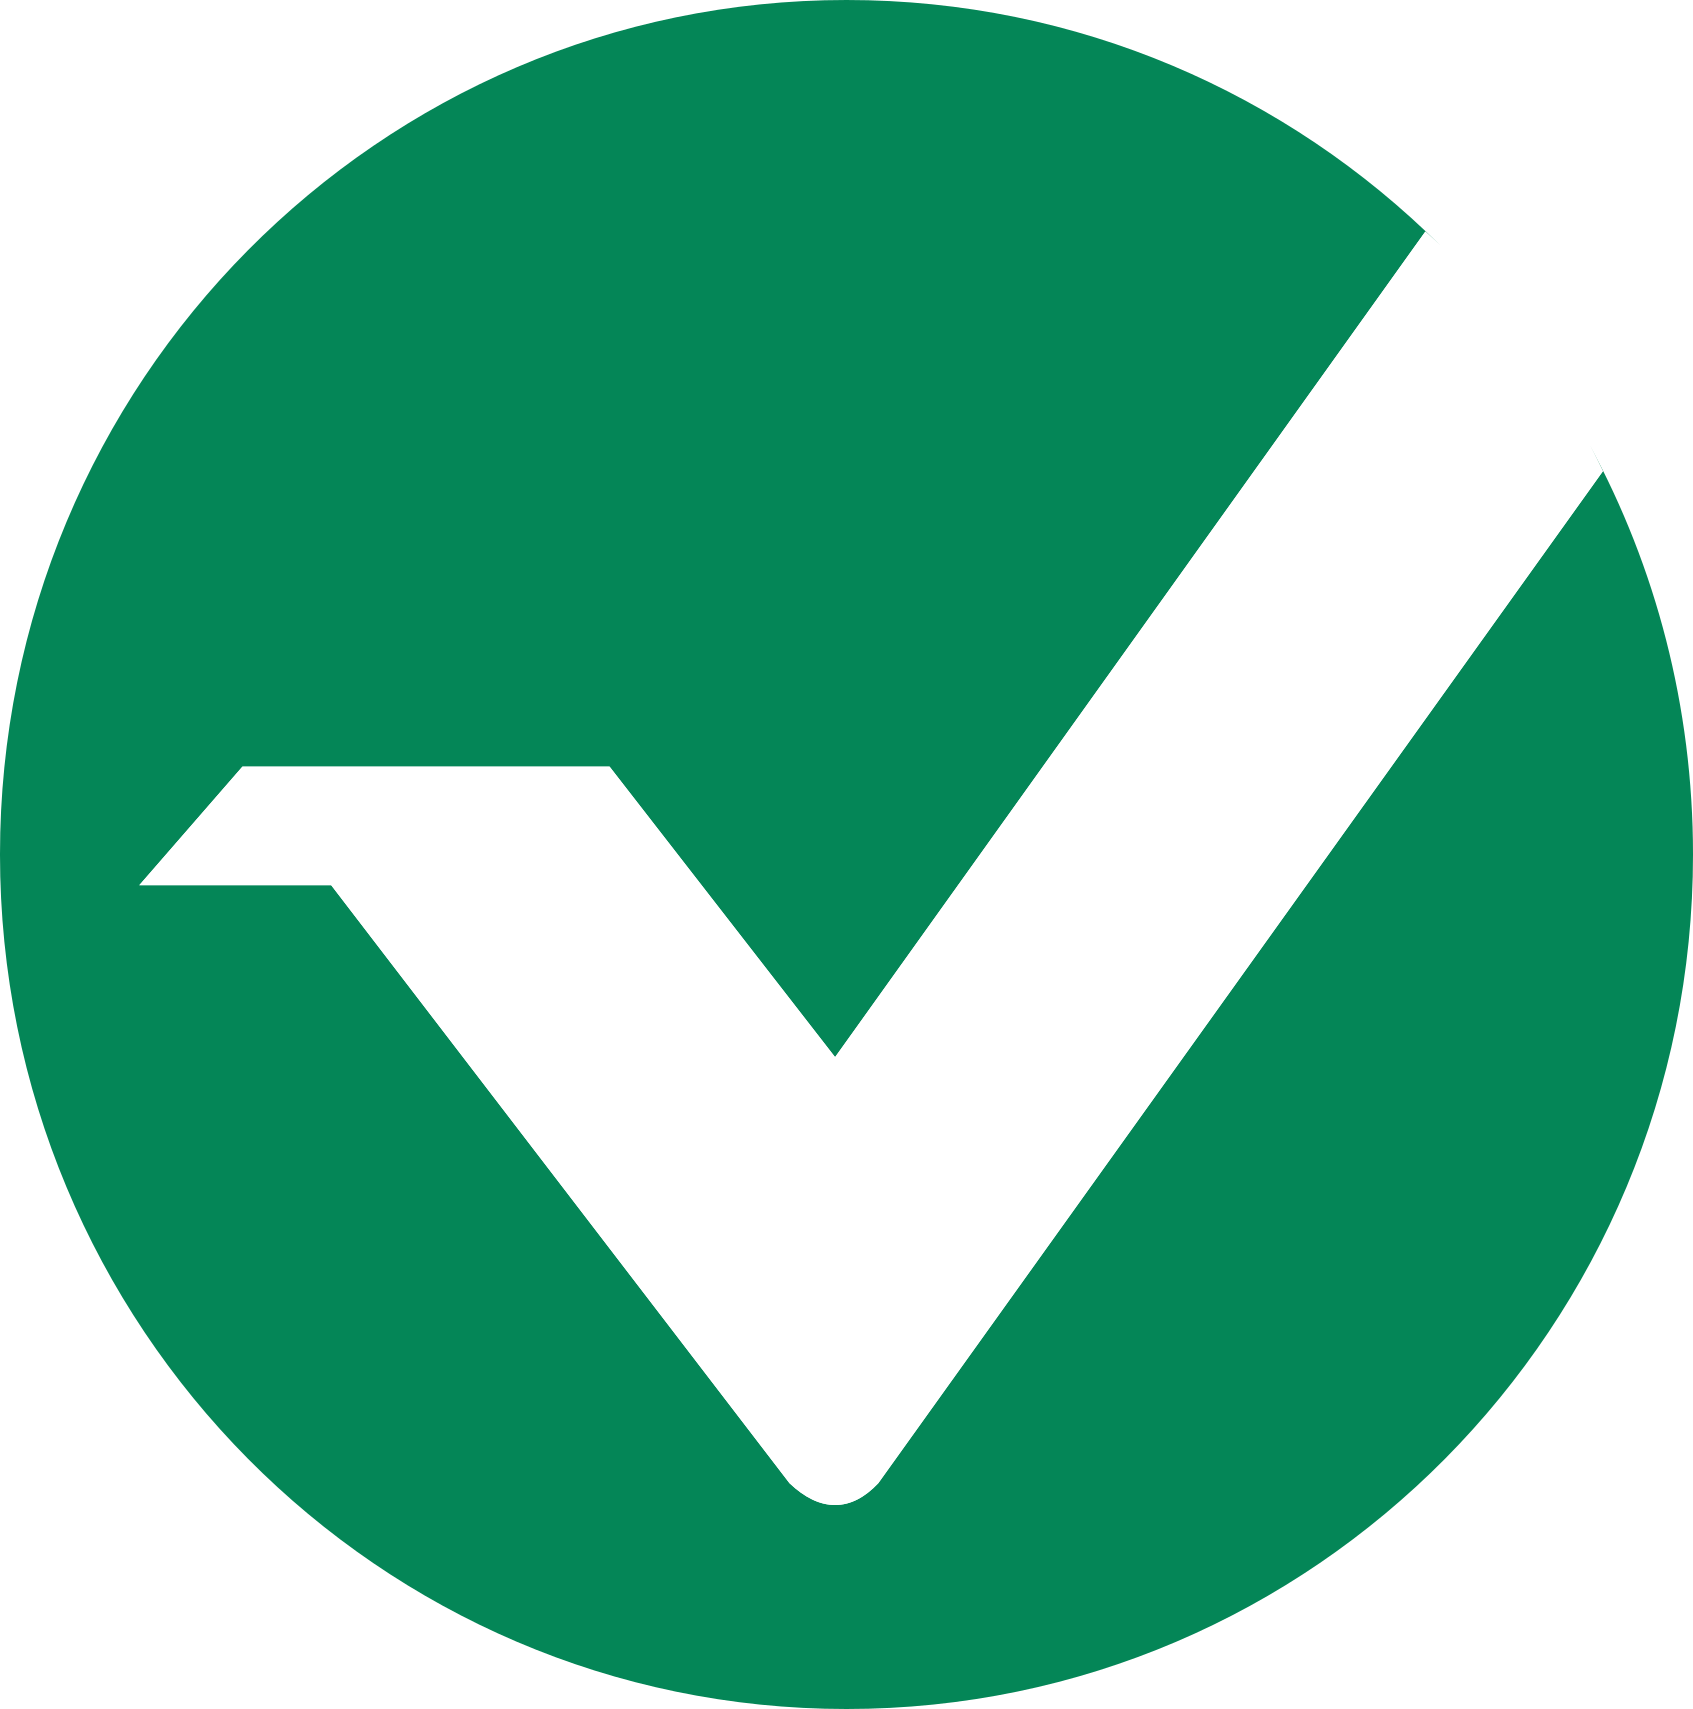 CoinPayments provides Vertcoin merchant services for online stores that accept Vertcoin (VTC).